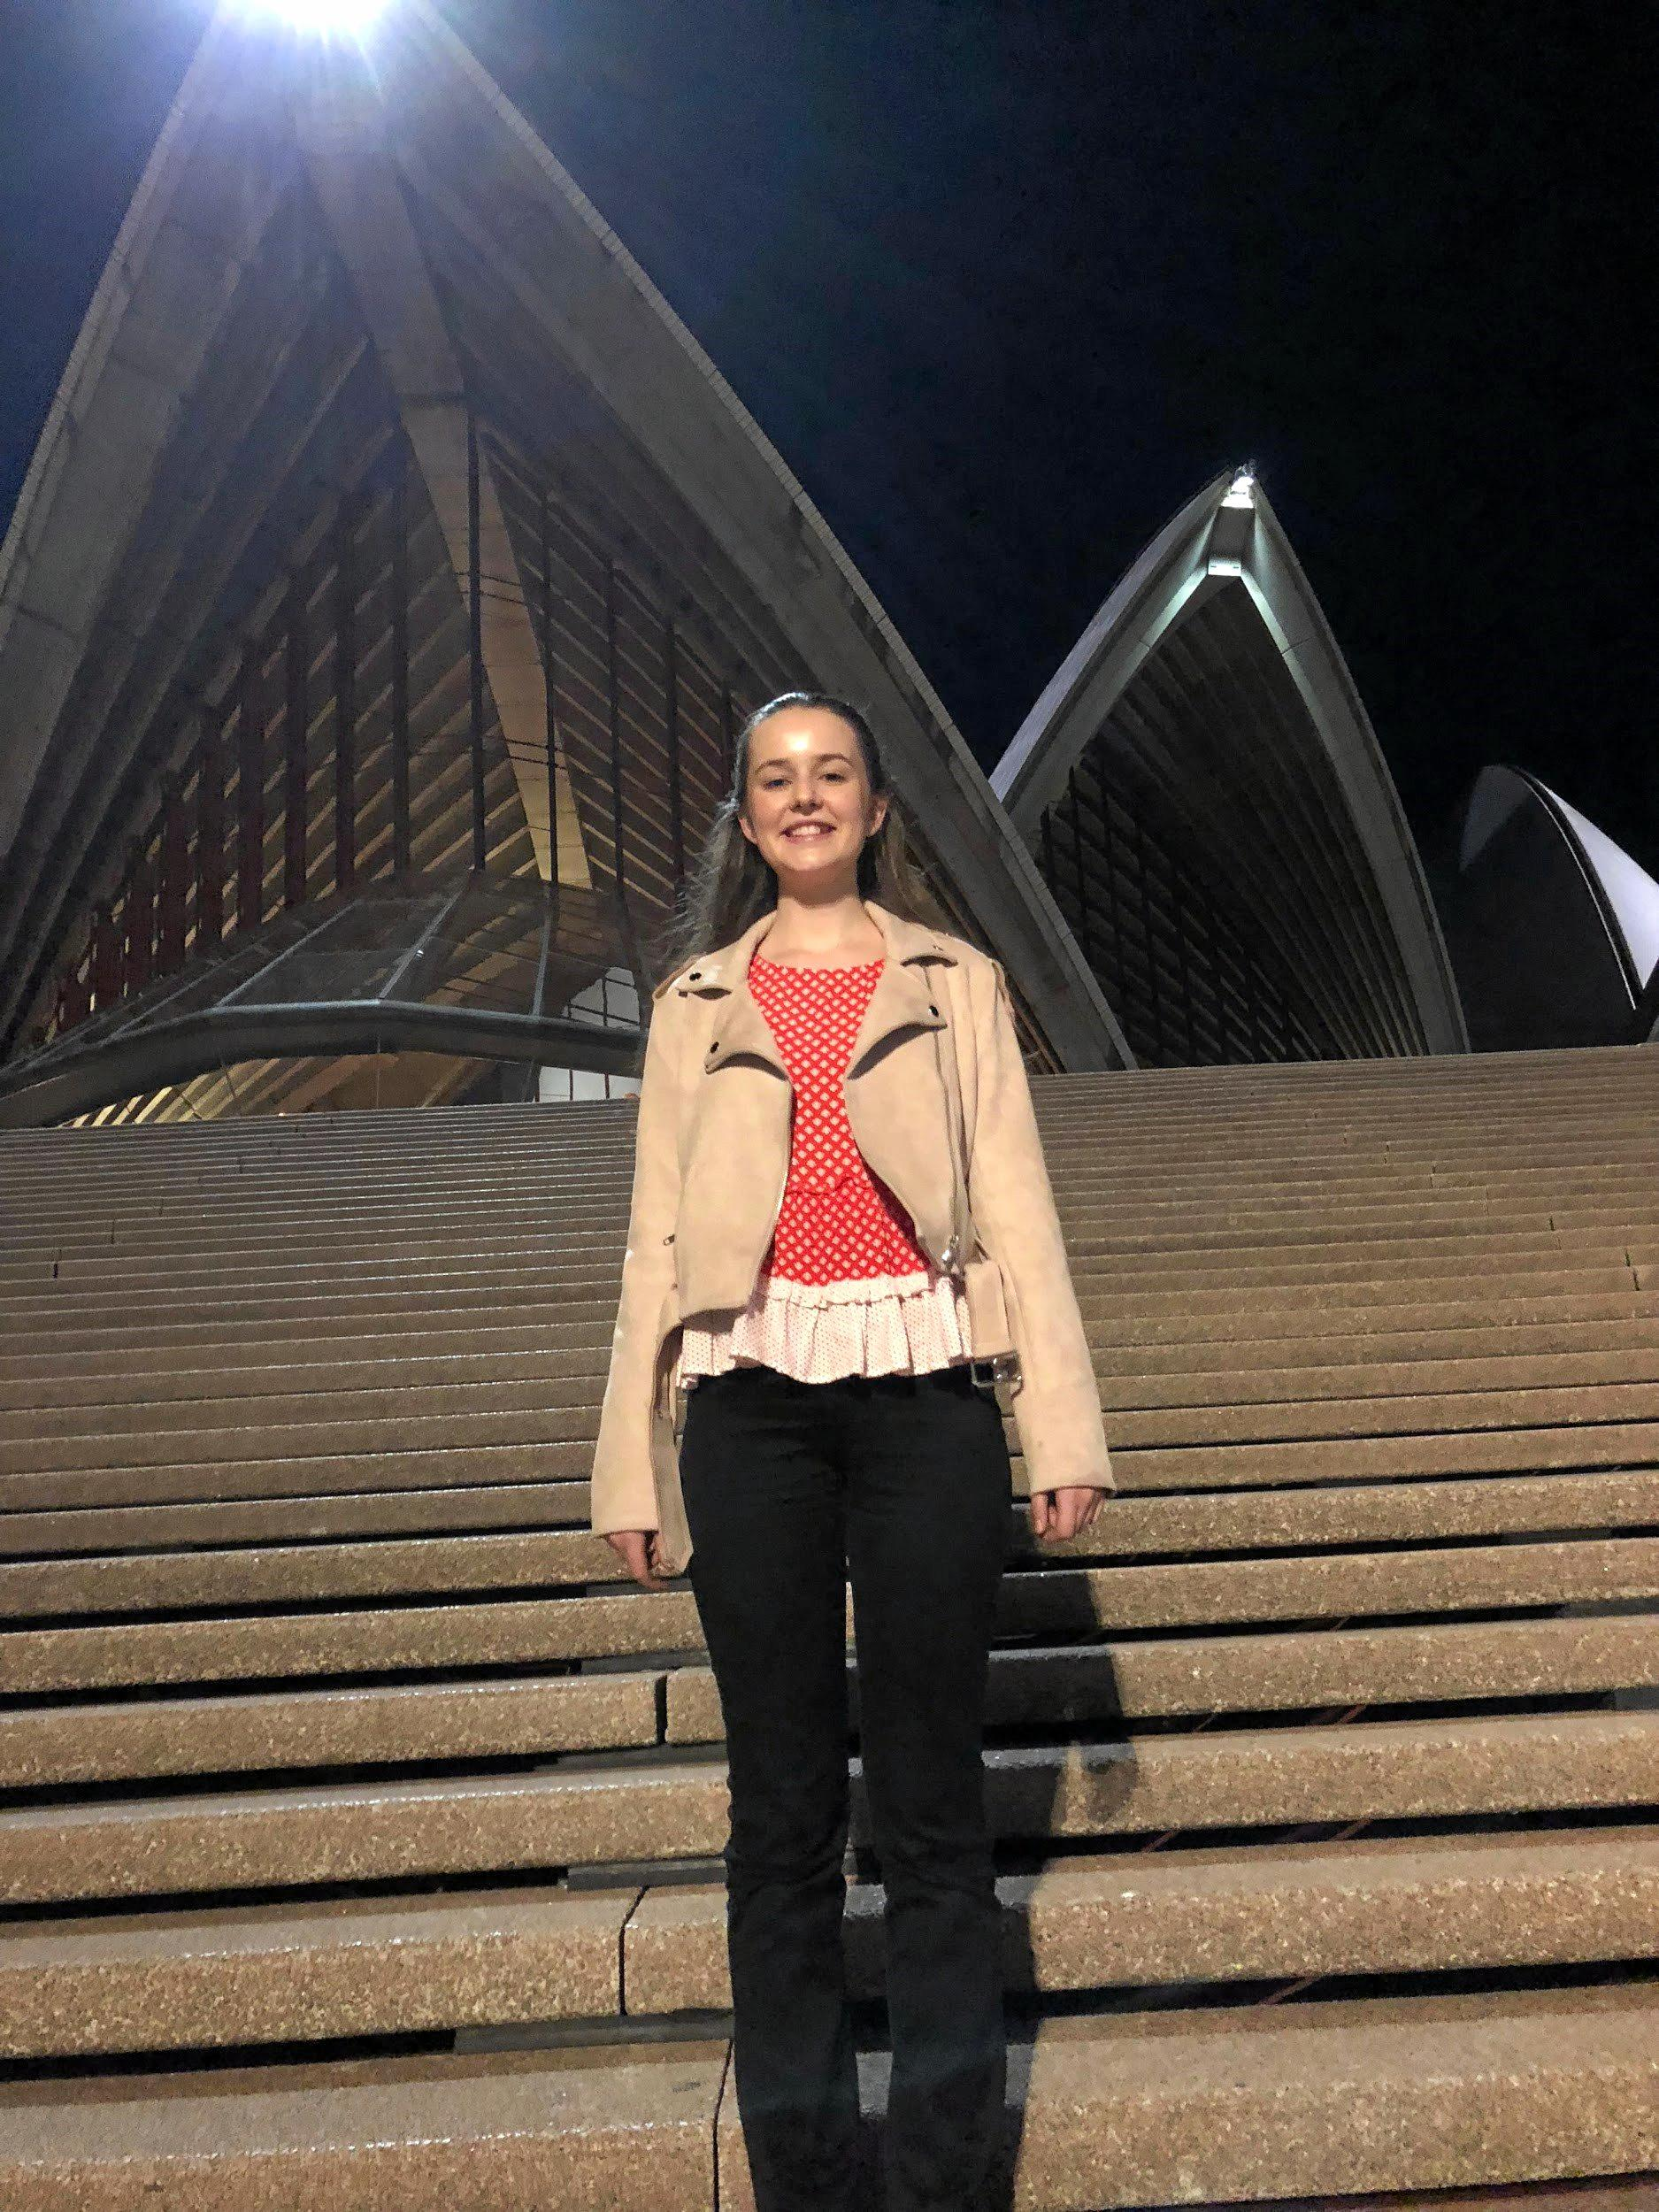 Rose Light was all smiles after playing her violin at the Sydney Opera House.